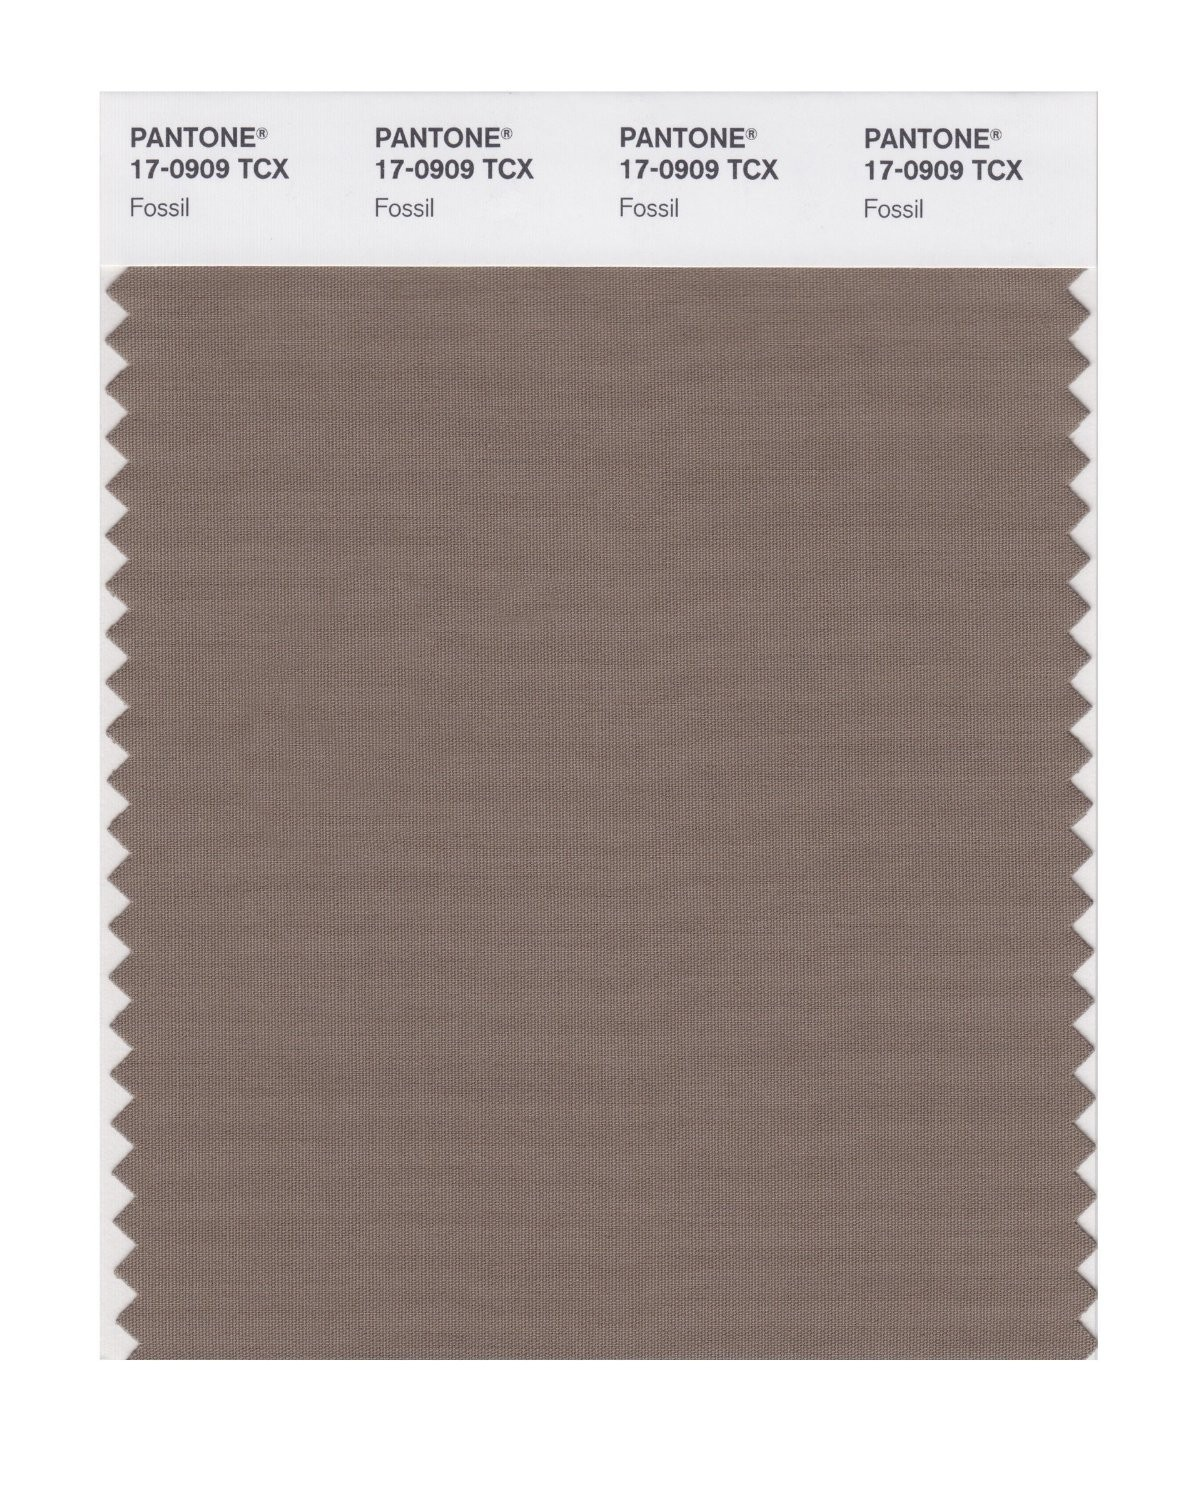 Pantone 17-0909 TCX Swatch Card Fossil